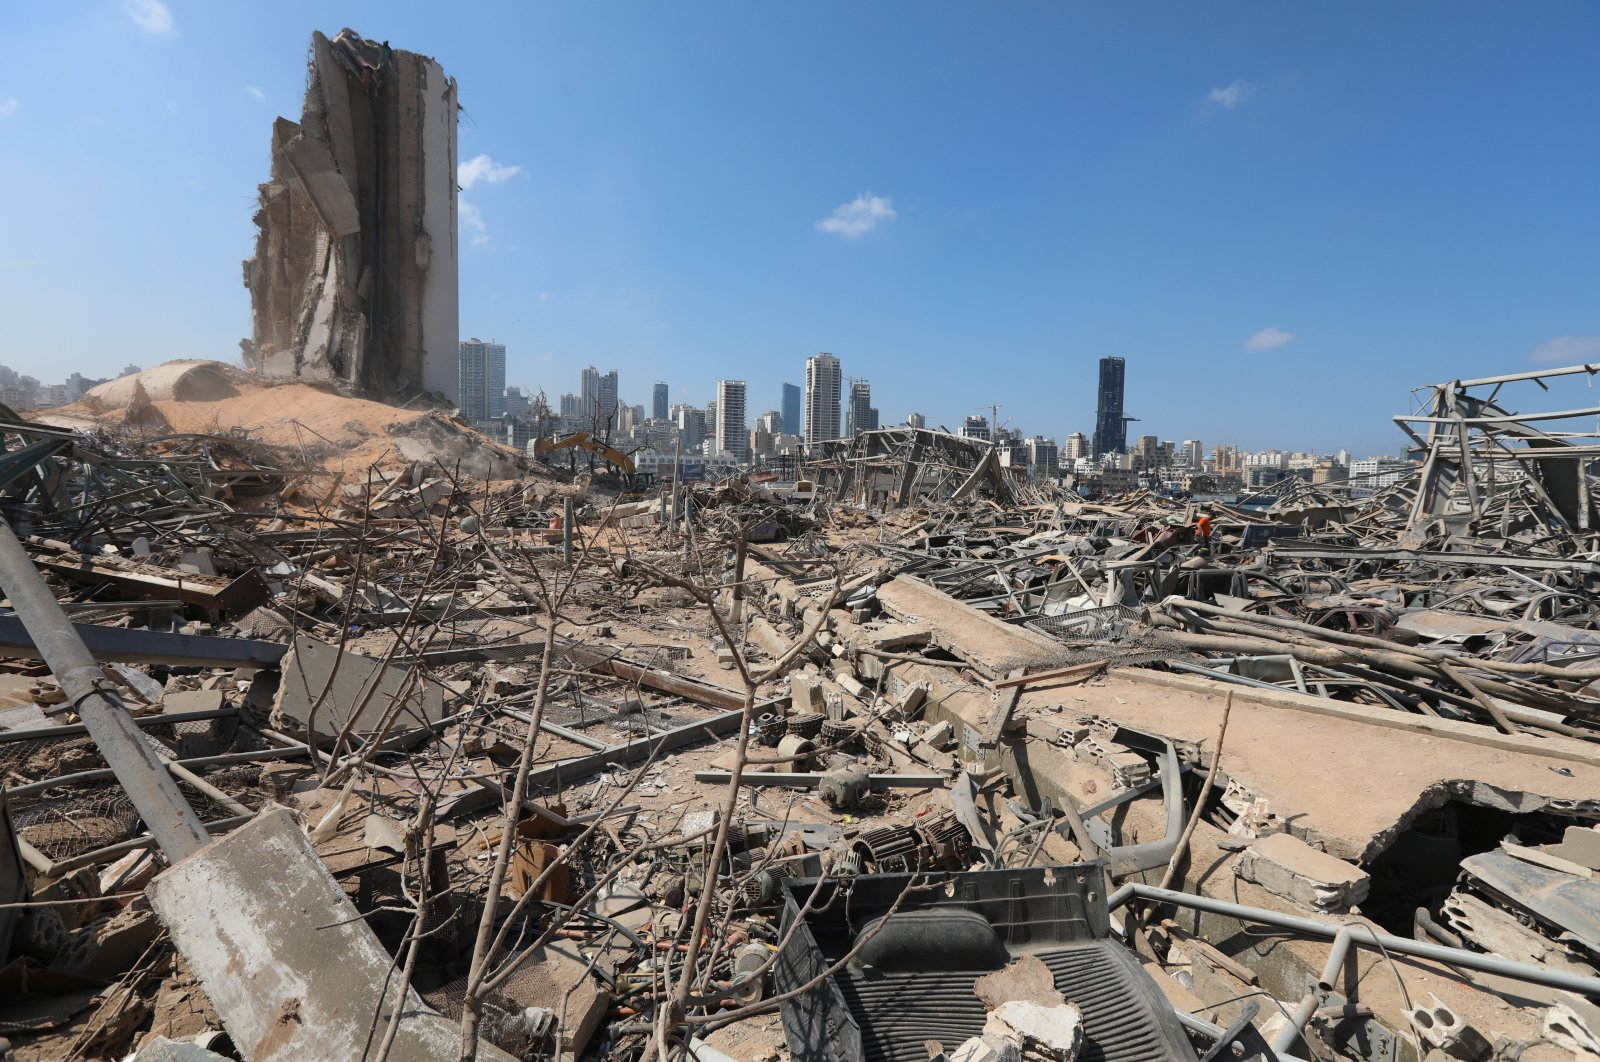 Rubble is seen at the site of Tuesday's blast, at Beirut's port area, Lebanon, August 7, 2020. (Reuters Photo)